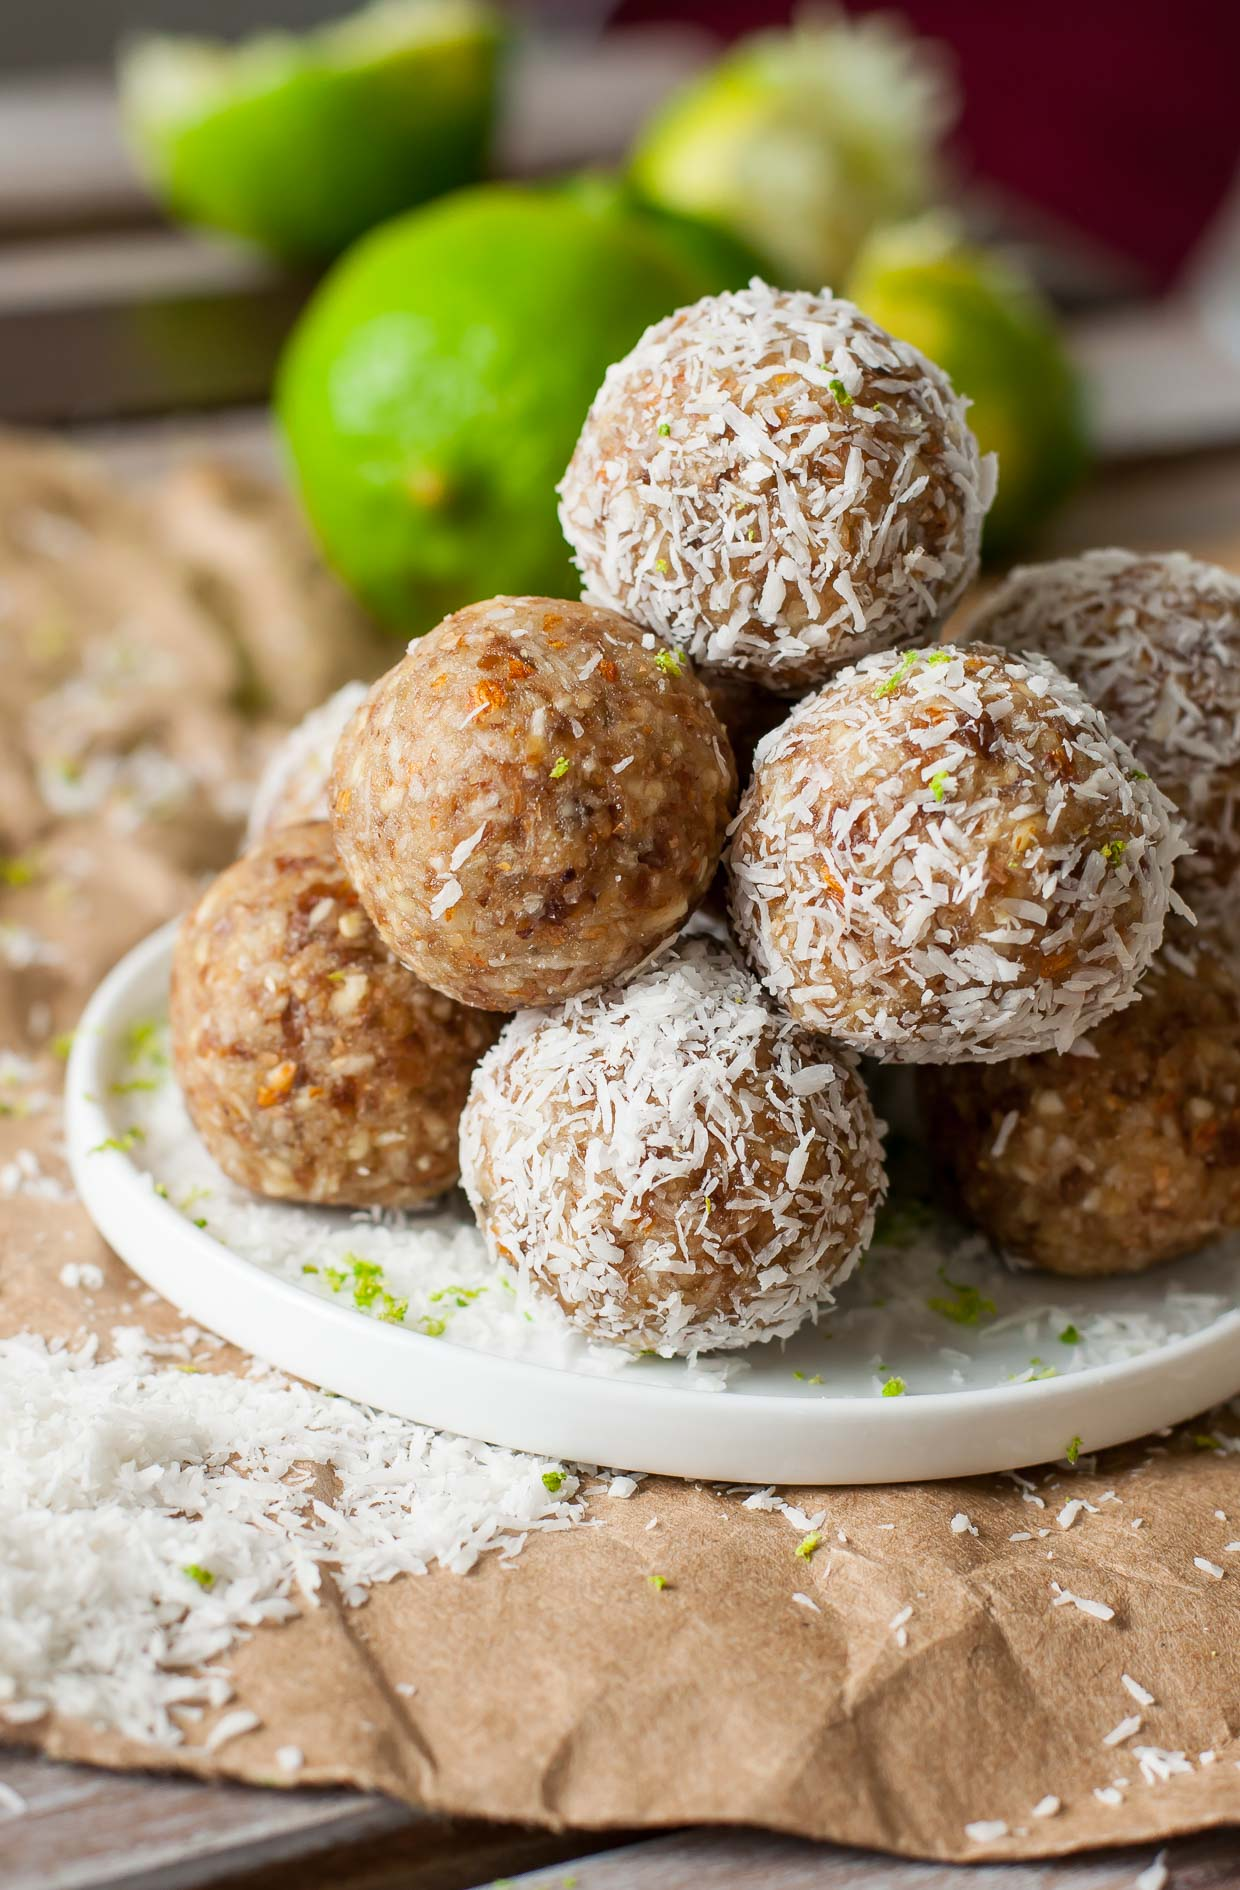 These healthy no-bake Key Lime Pie Energy Bites are the perfect tropical treat!